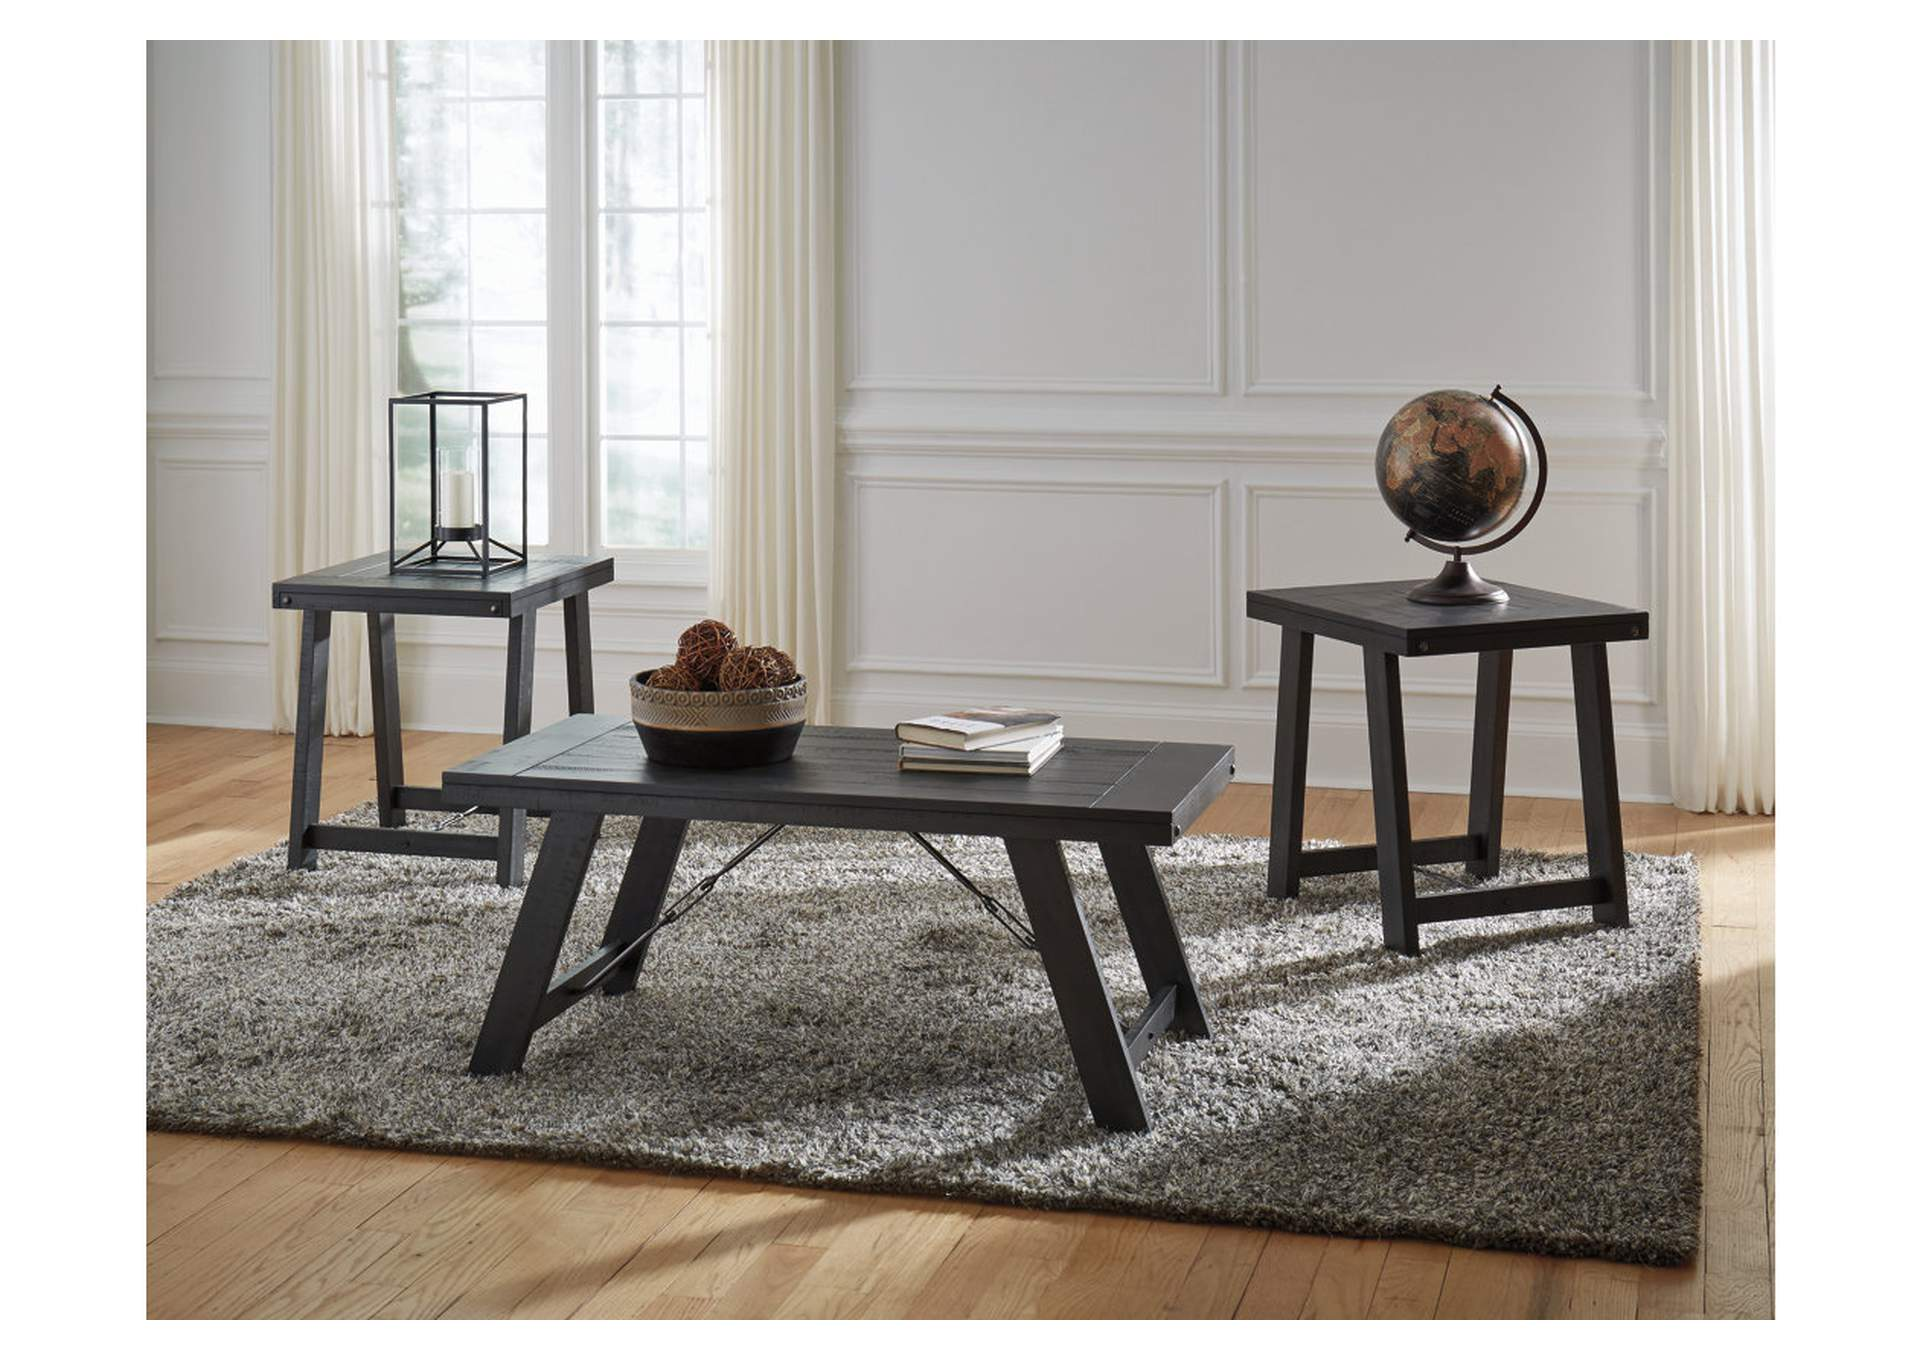 Noorbrook Black/Pewter 3 Piece Occasional Table Set,Signature Design By Ashley